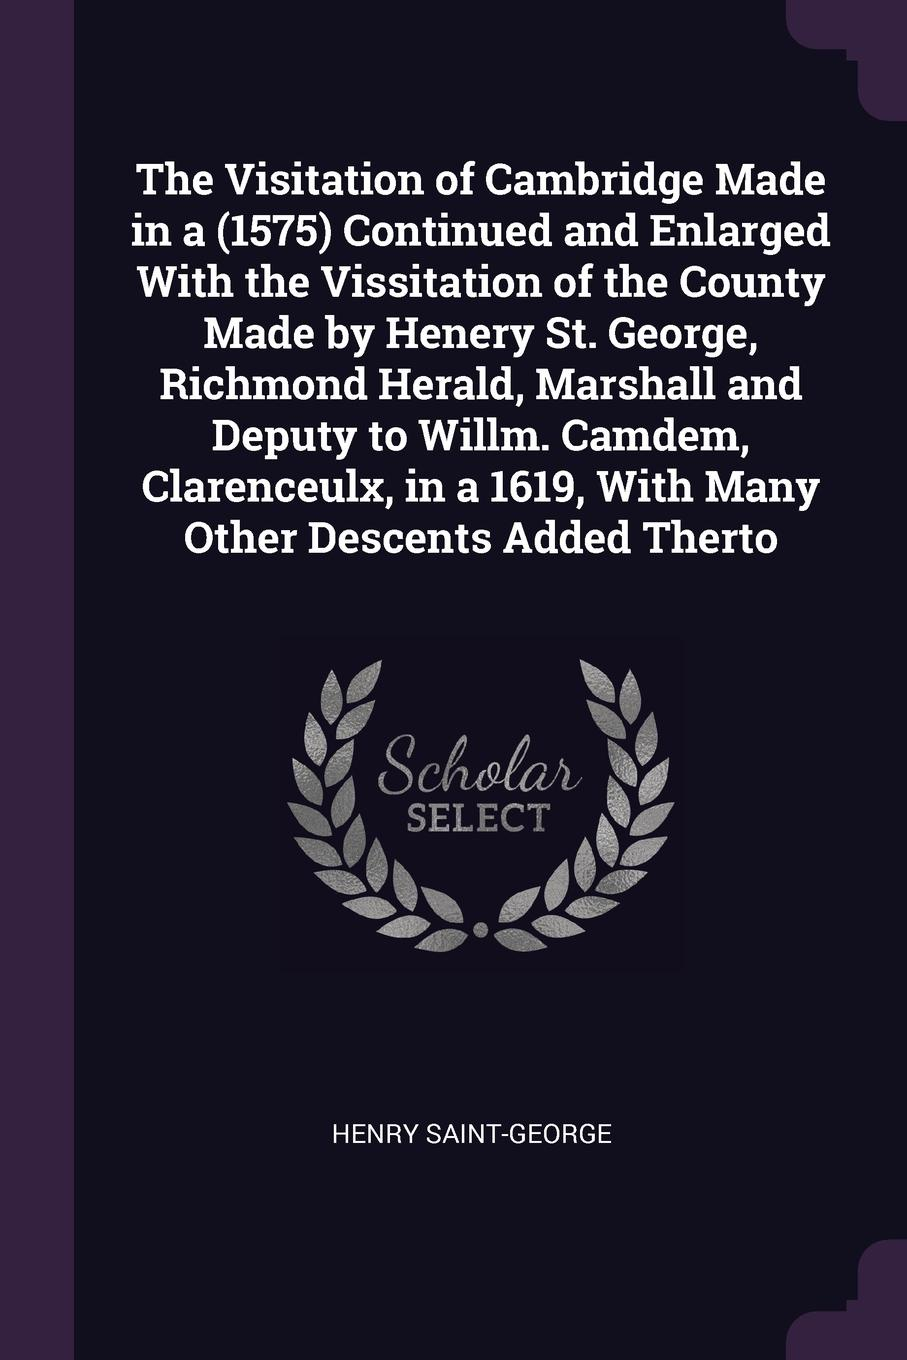 The-Visitation-of-Cambridge-Made-in-a-1575-Continued-and-Enlarged-With-the-Vissitation-of-the-County-Made-by-Henery-St-George-Richmond-Herald-Marshall